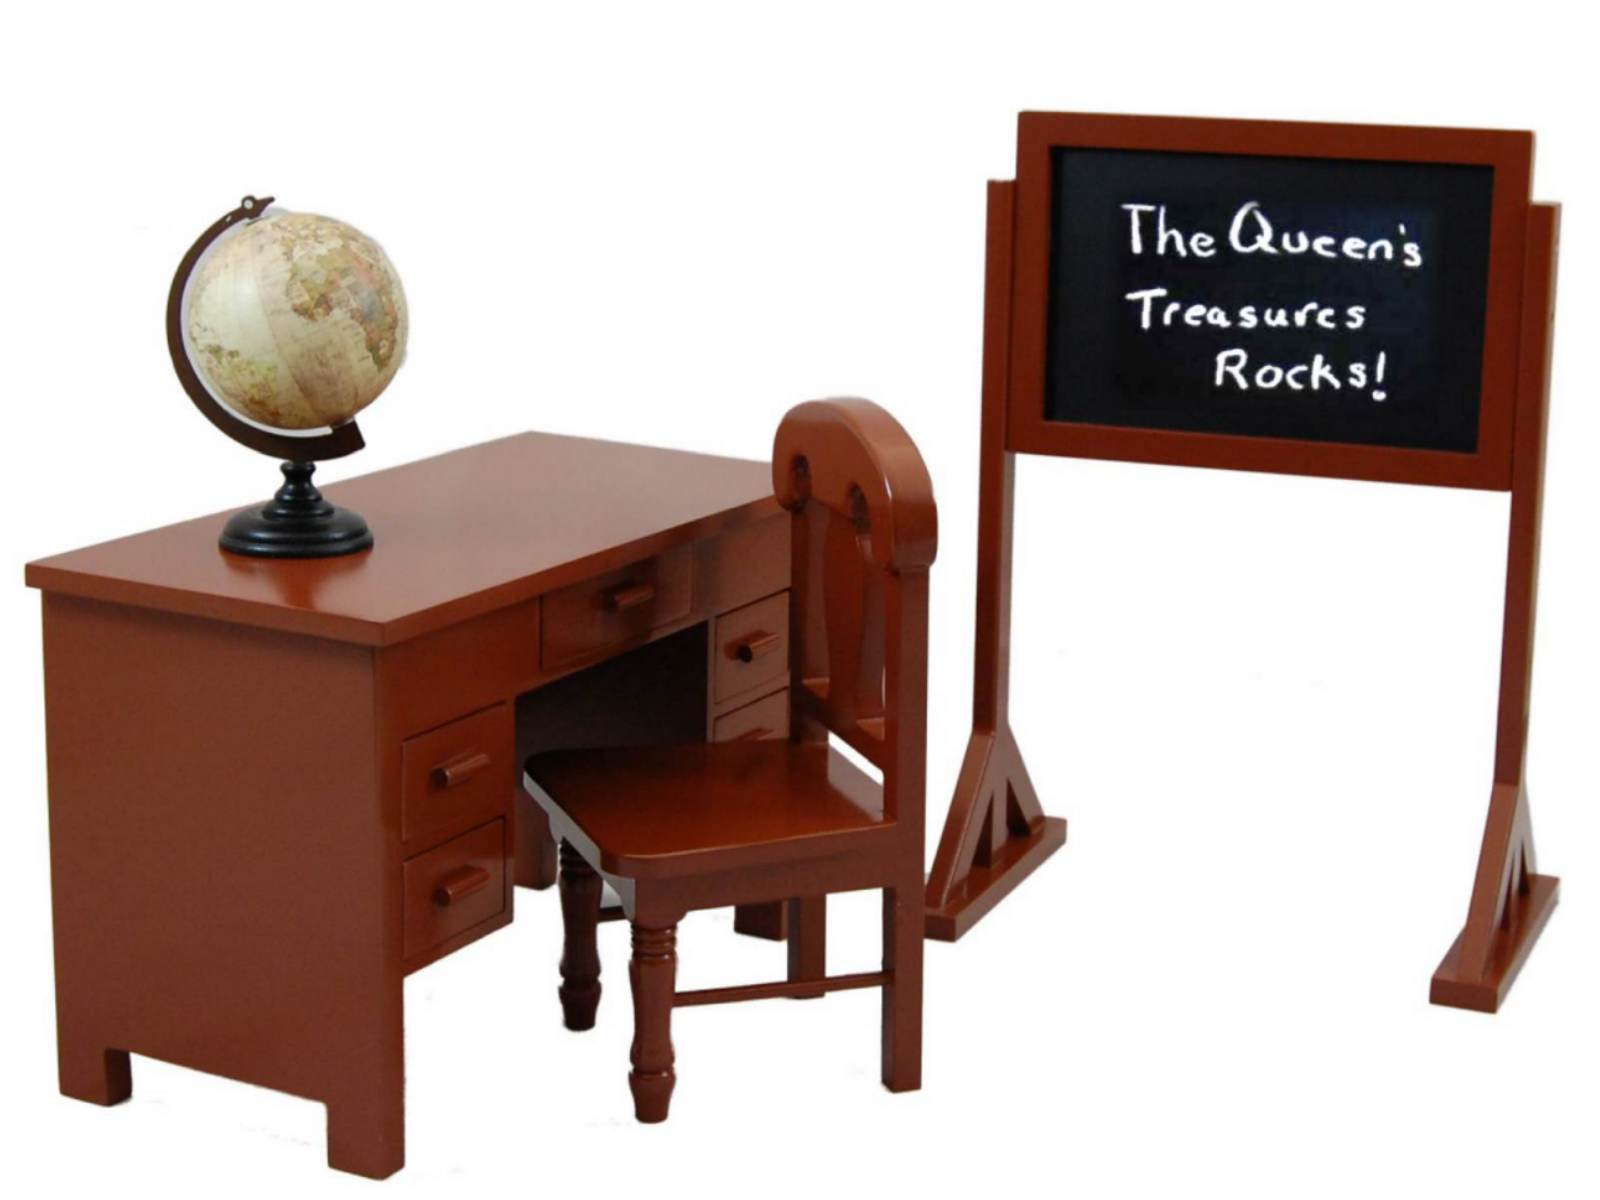 18 In Doll Furniture & Accessory, School Teachers Desk, Chair, Chalkboard, Globe by The Queen's Treasures